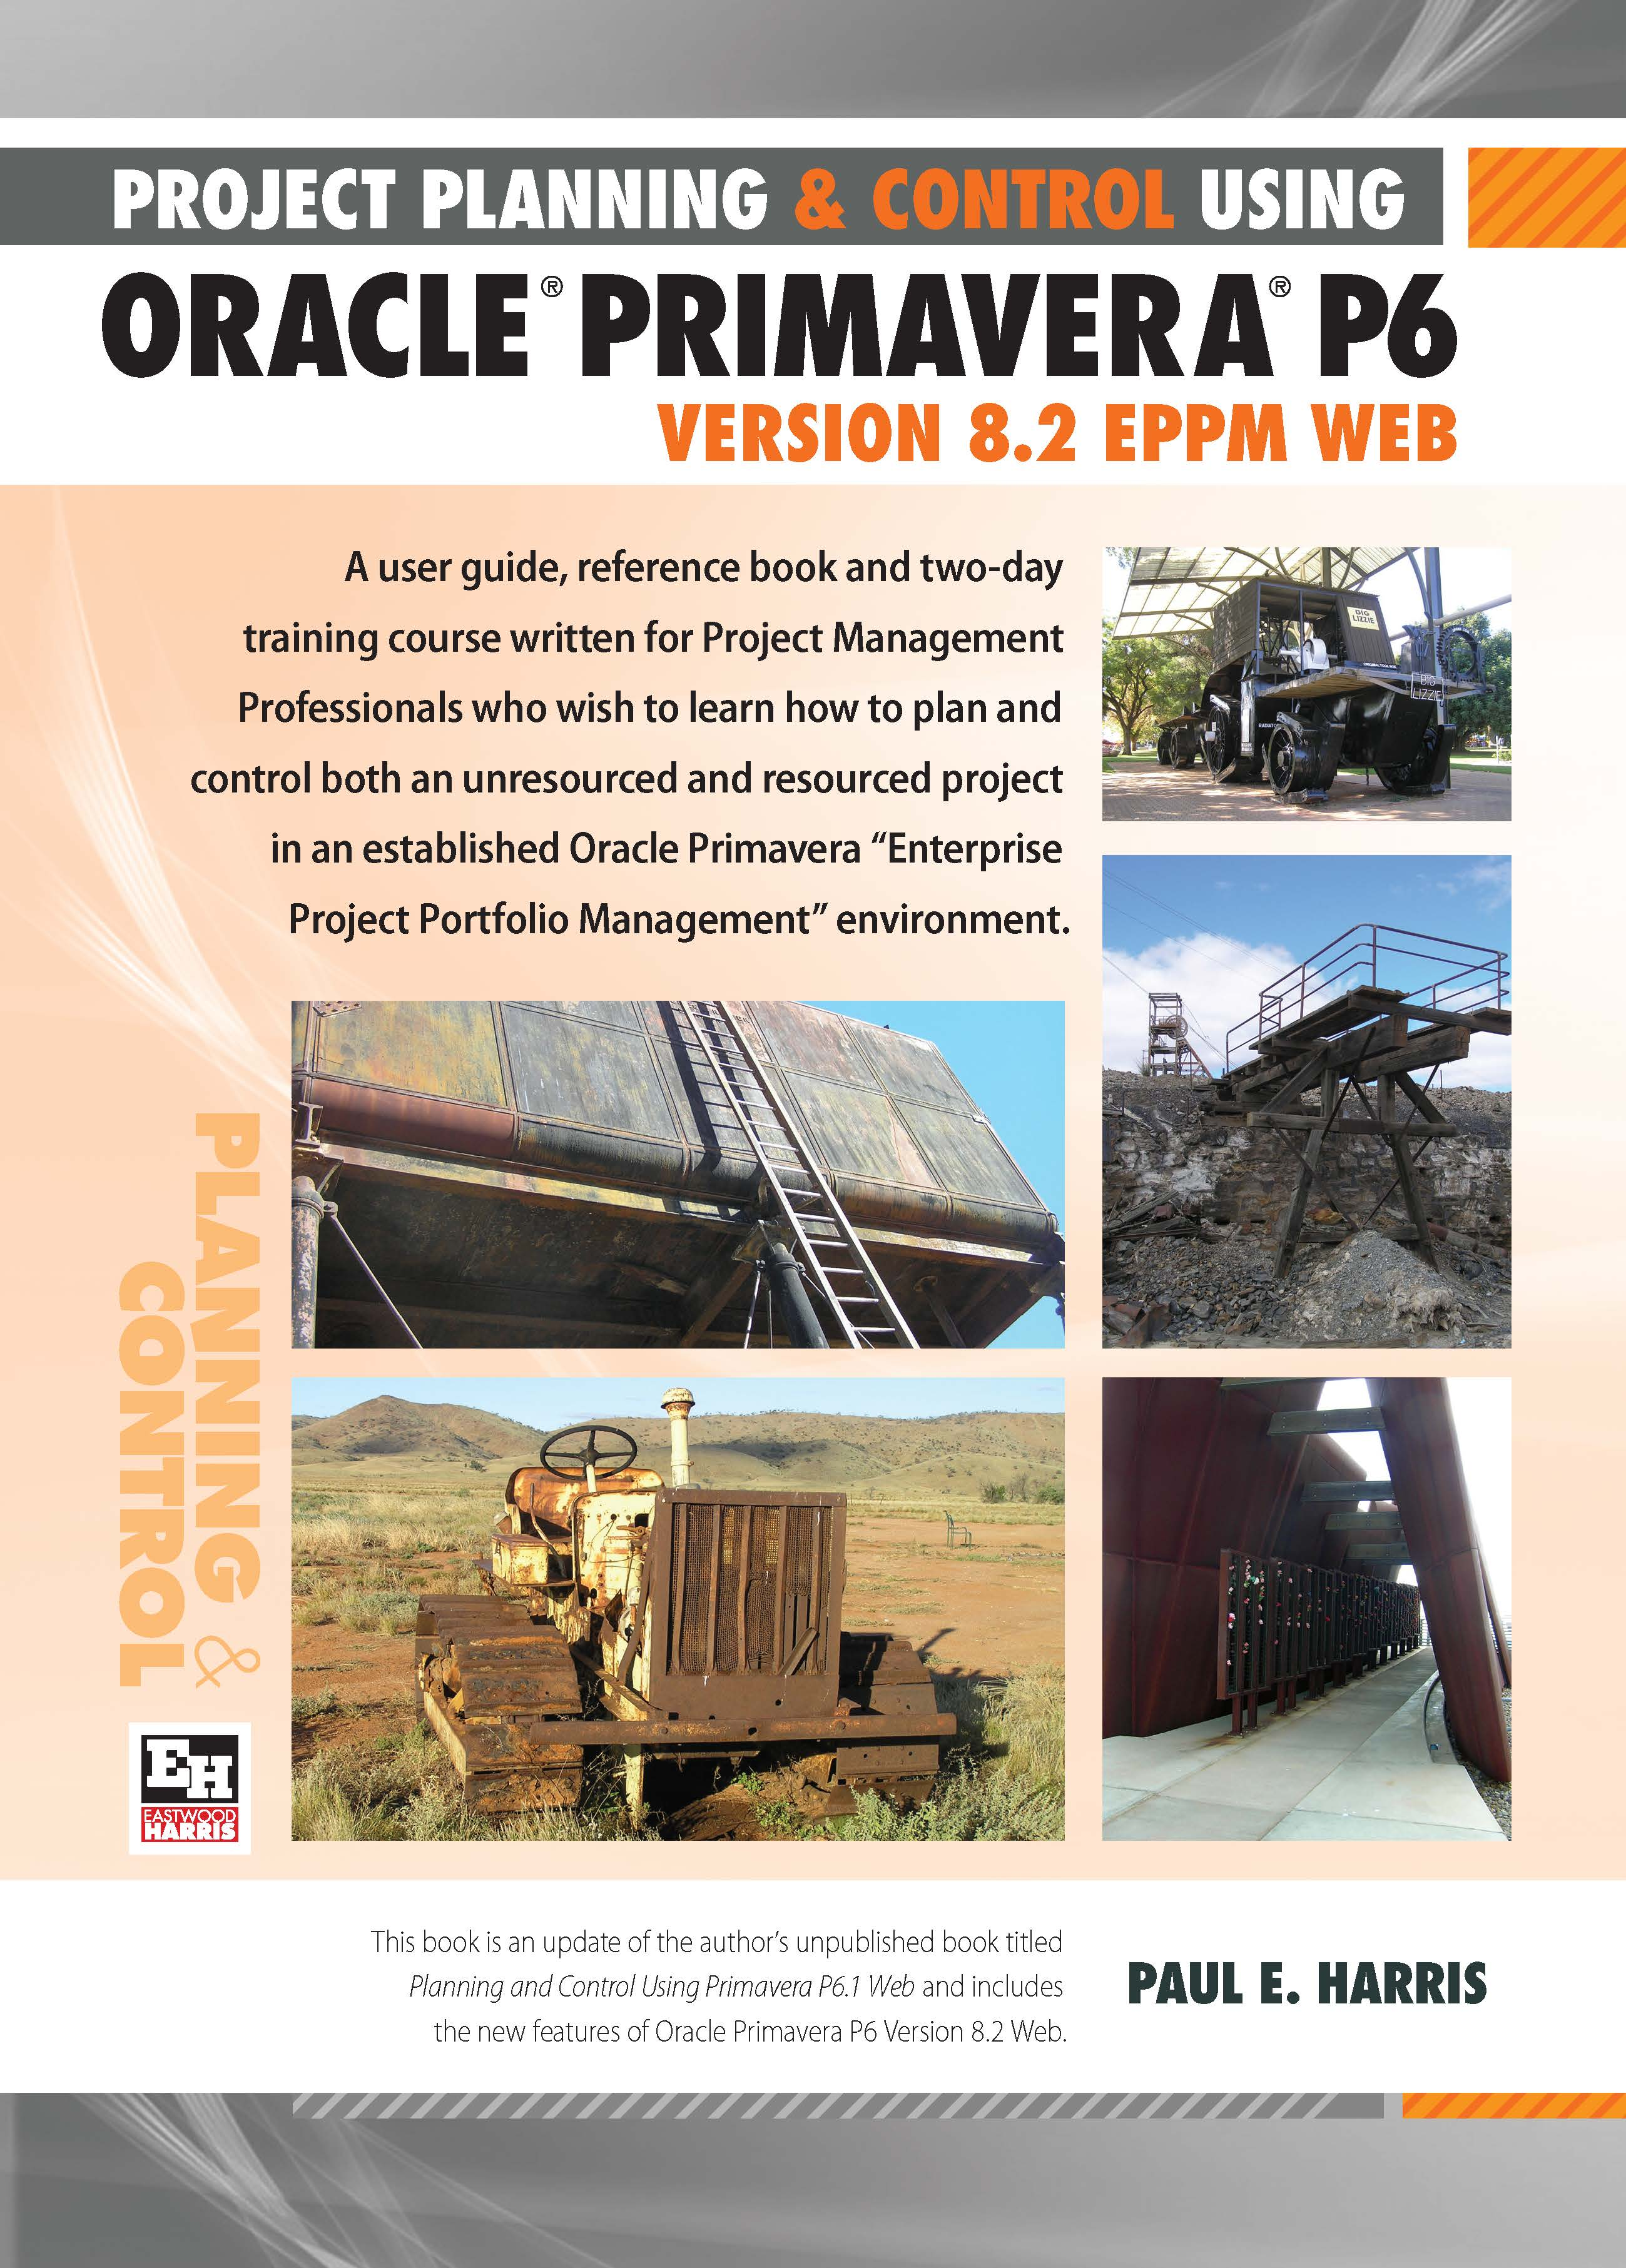 project planning and control using oracle primavera p6 version 8 2 rh eastwoodharris com Primavera Project Planner Primavera Construction Scheduling Software